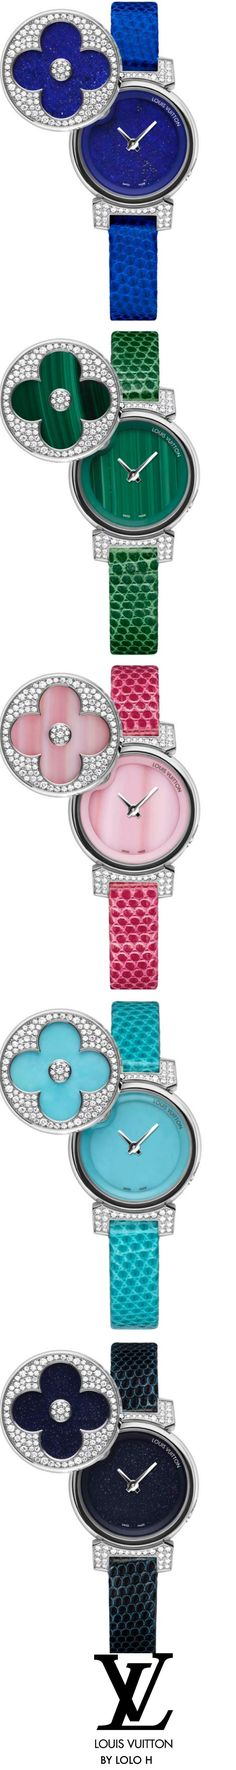 Louis Vuitton Tambour Bijou Secret watches